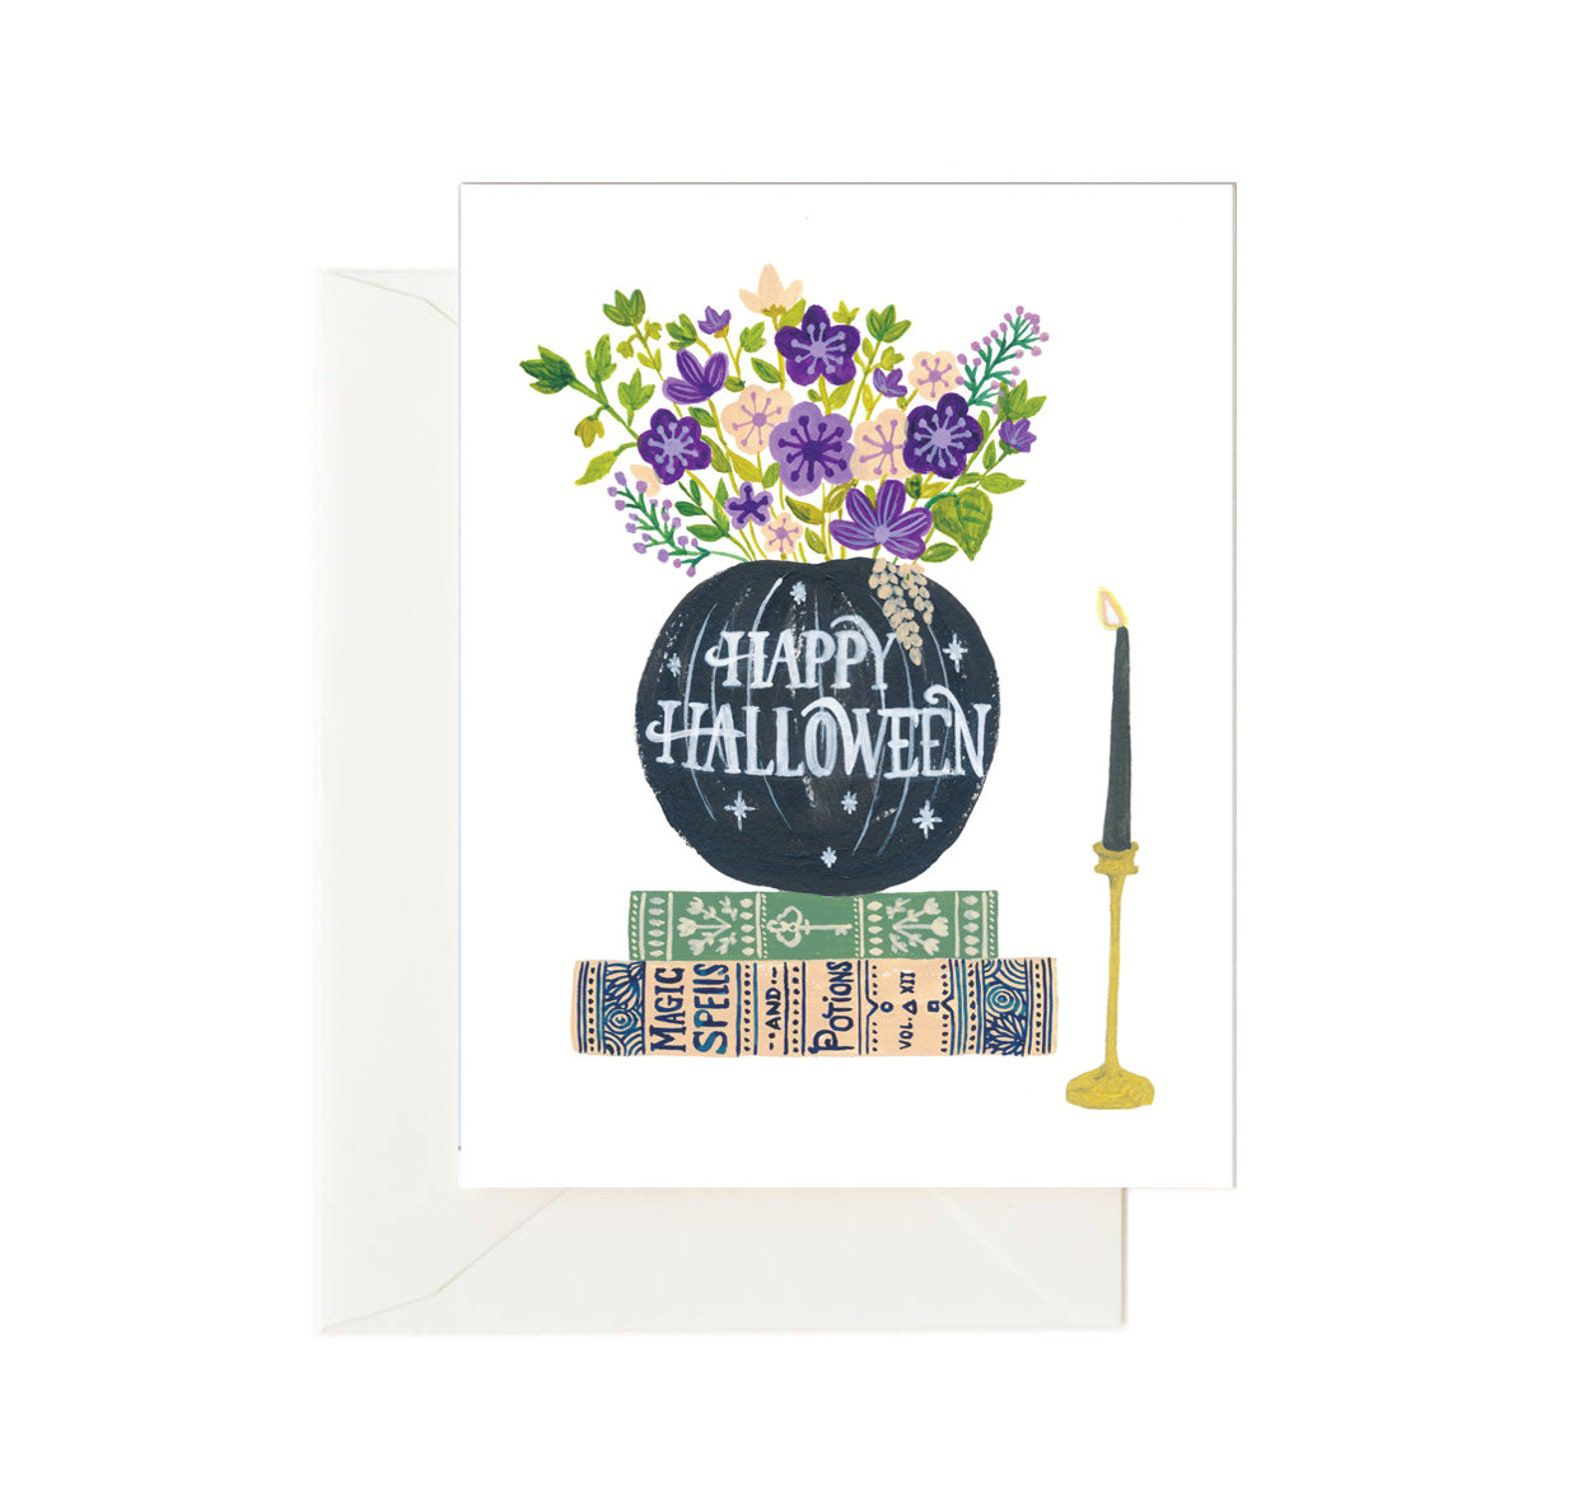 A card featuring a black pumpkin vase with green and purple flowers on a stack of books, with a black candle.